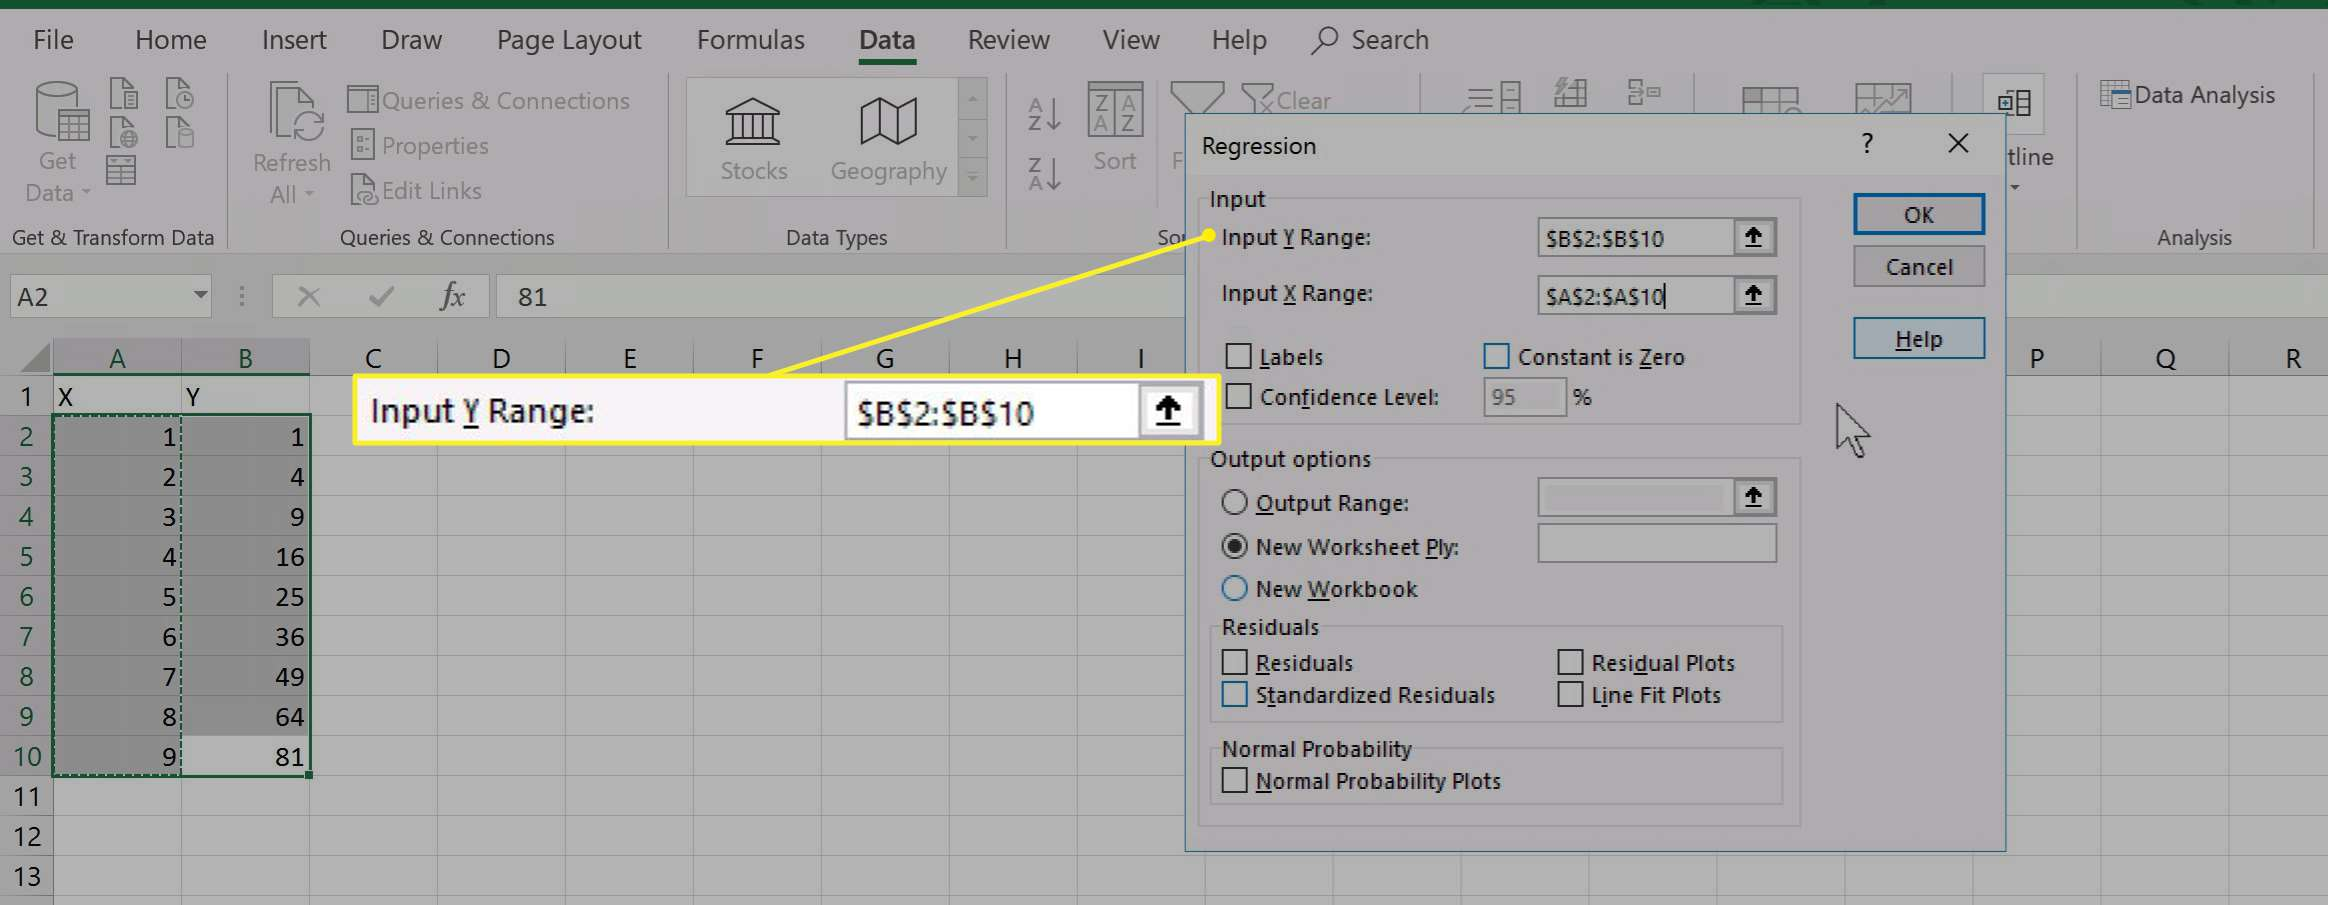 Excel Regression options with Input Y Range highlighted